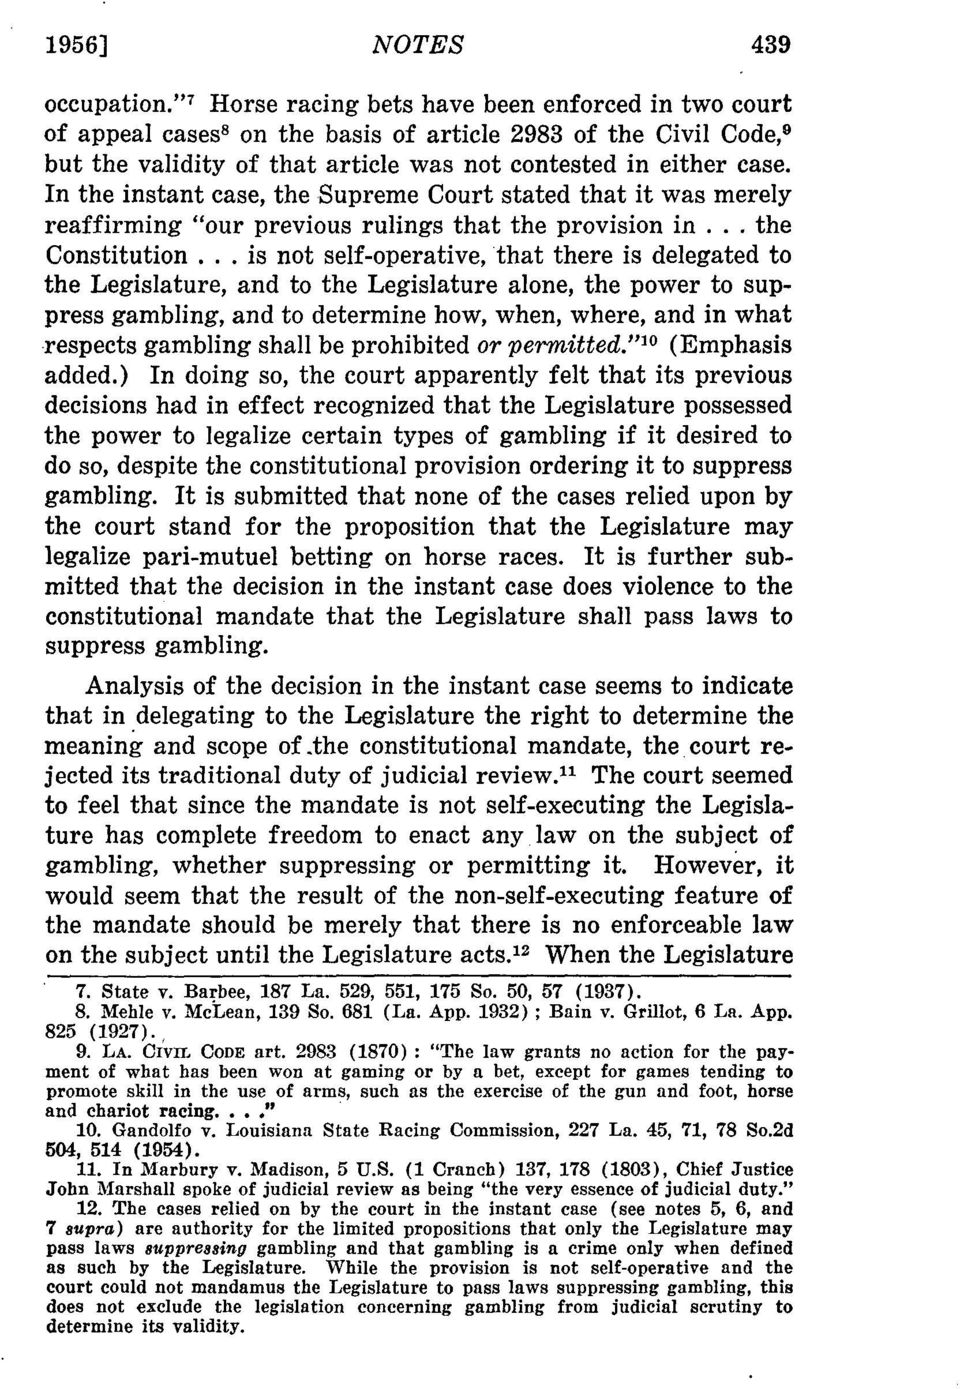 "In the instant case, the Supreme Court stated that it was merely reaffirming ""our previous rulings that the provision in... the Constitution."